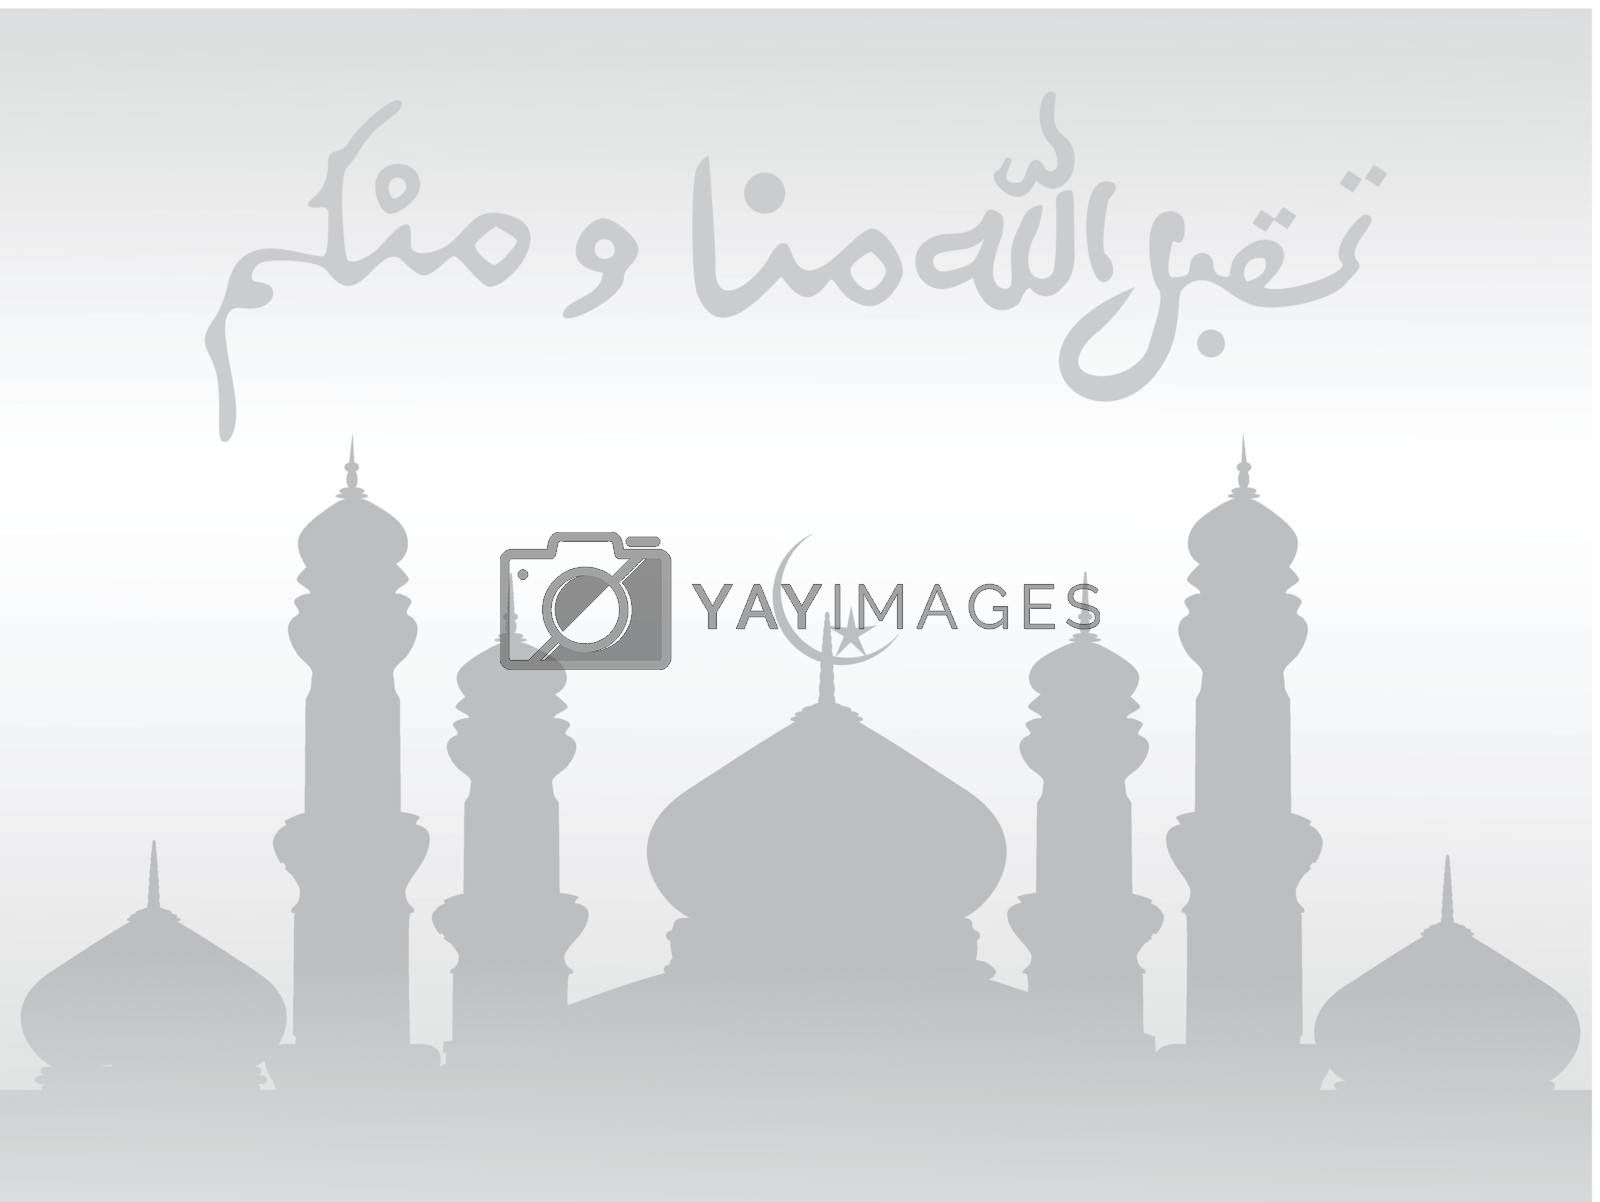 abstract frame with creative islamic background, design52 by aispl